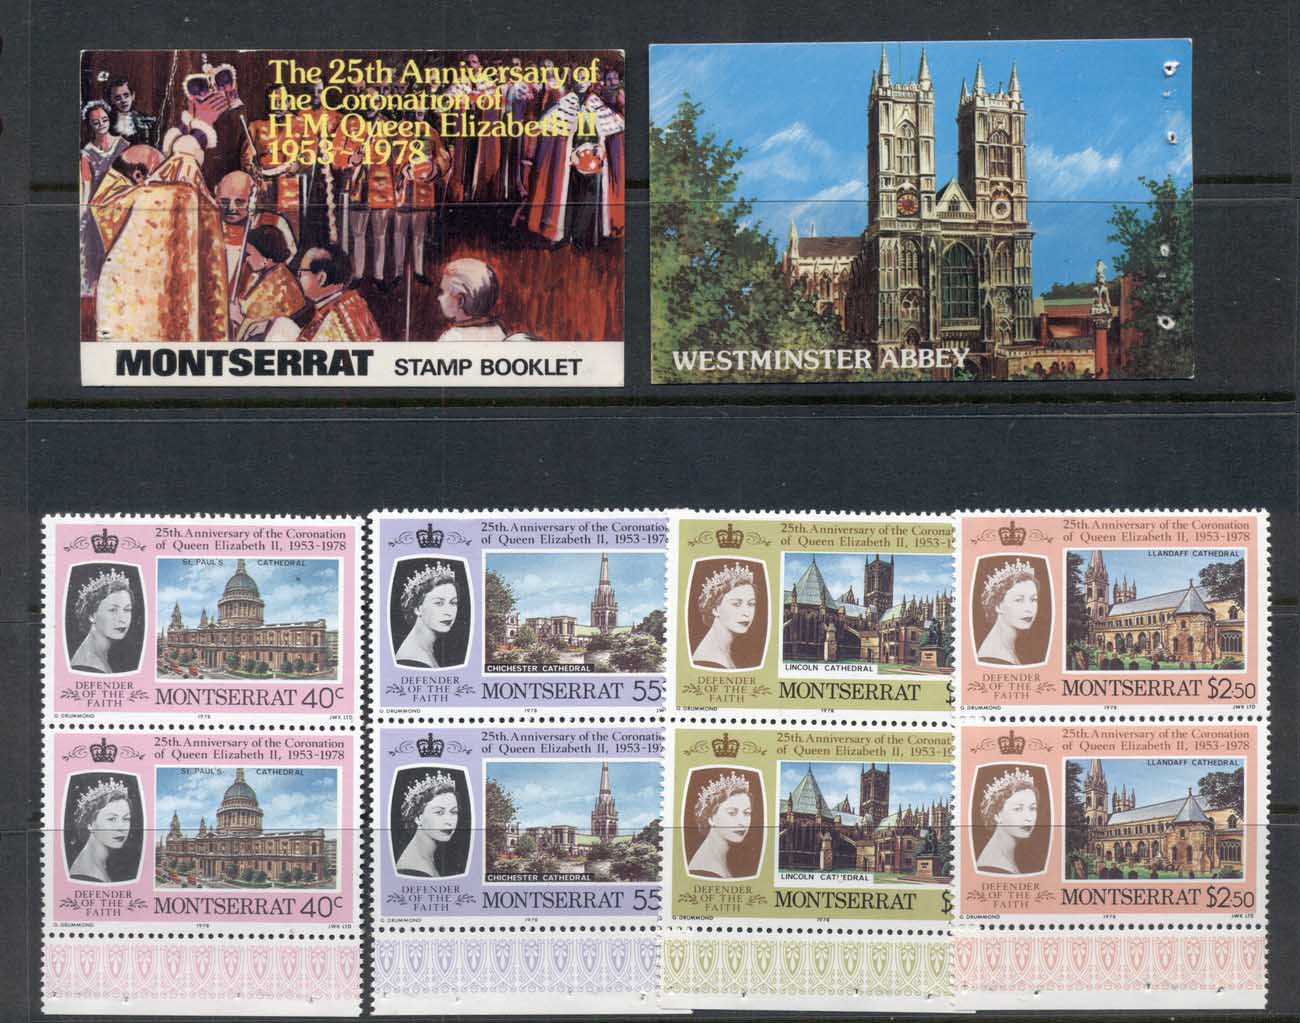 Montserrat 1978 QEII Coronation 25th Anniv. Exploded booklet MUH